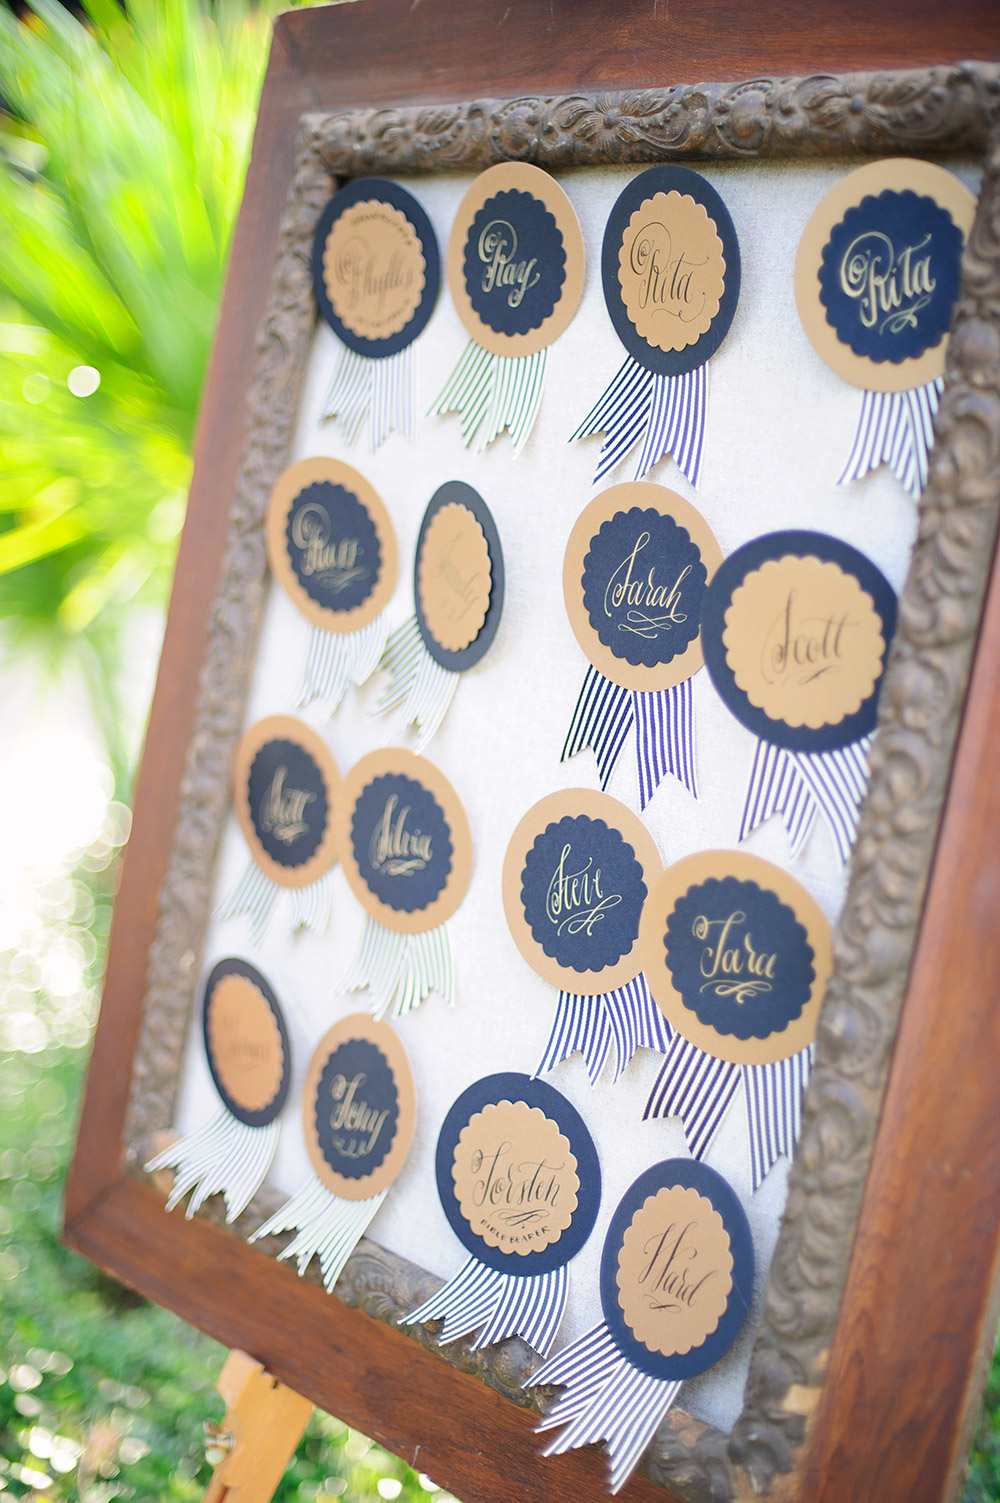 Wedding Details by Kelli Corn